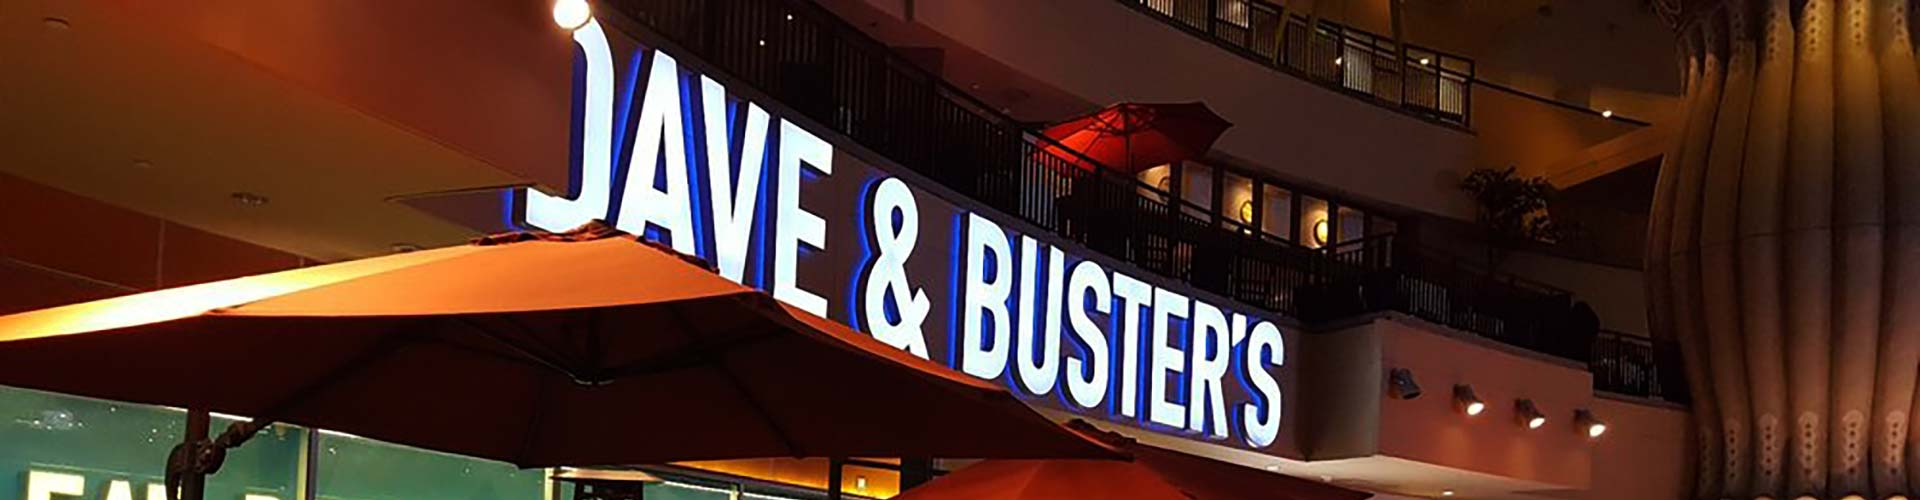 Dave And Busters Header 1920x500